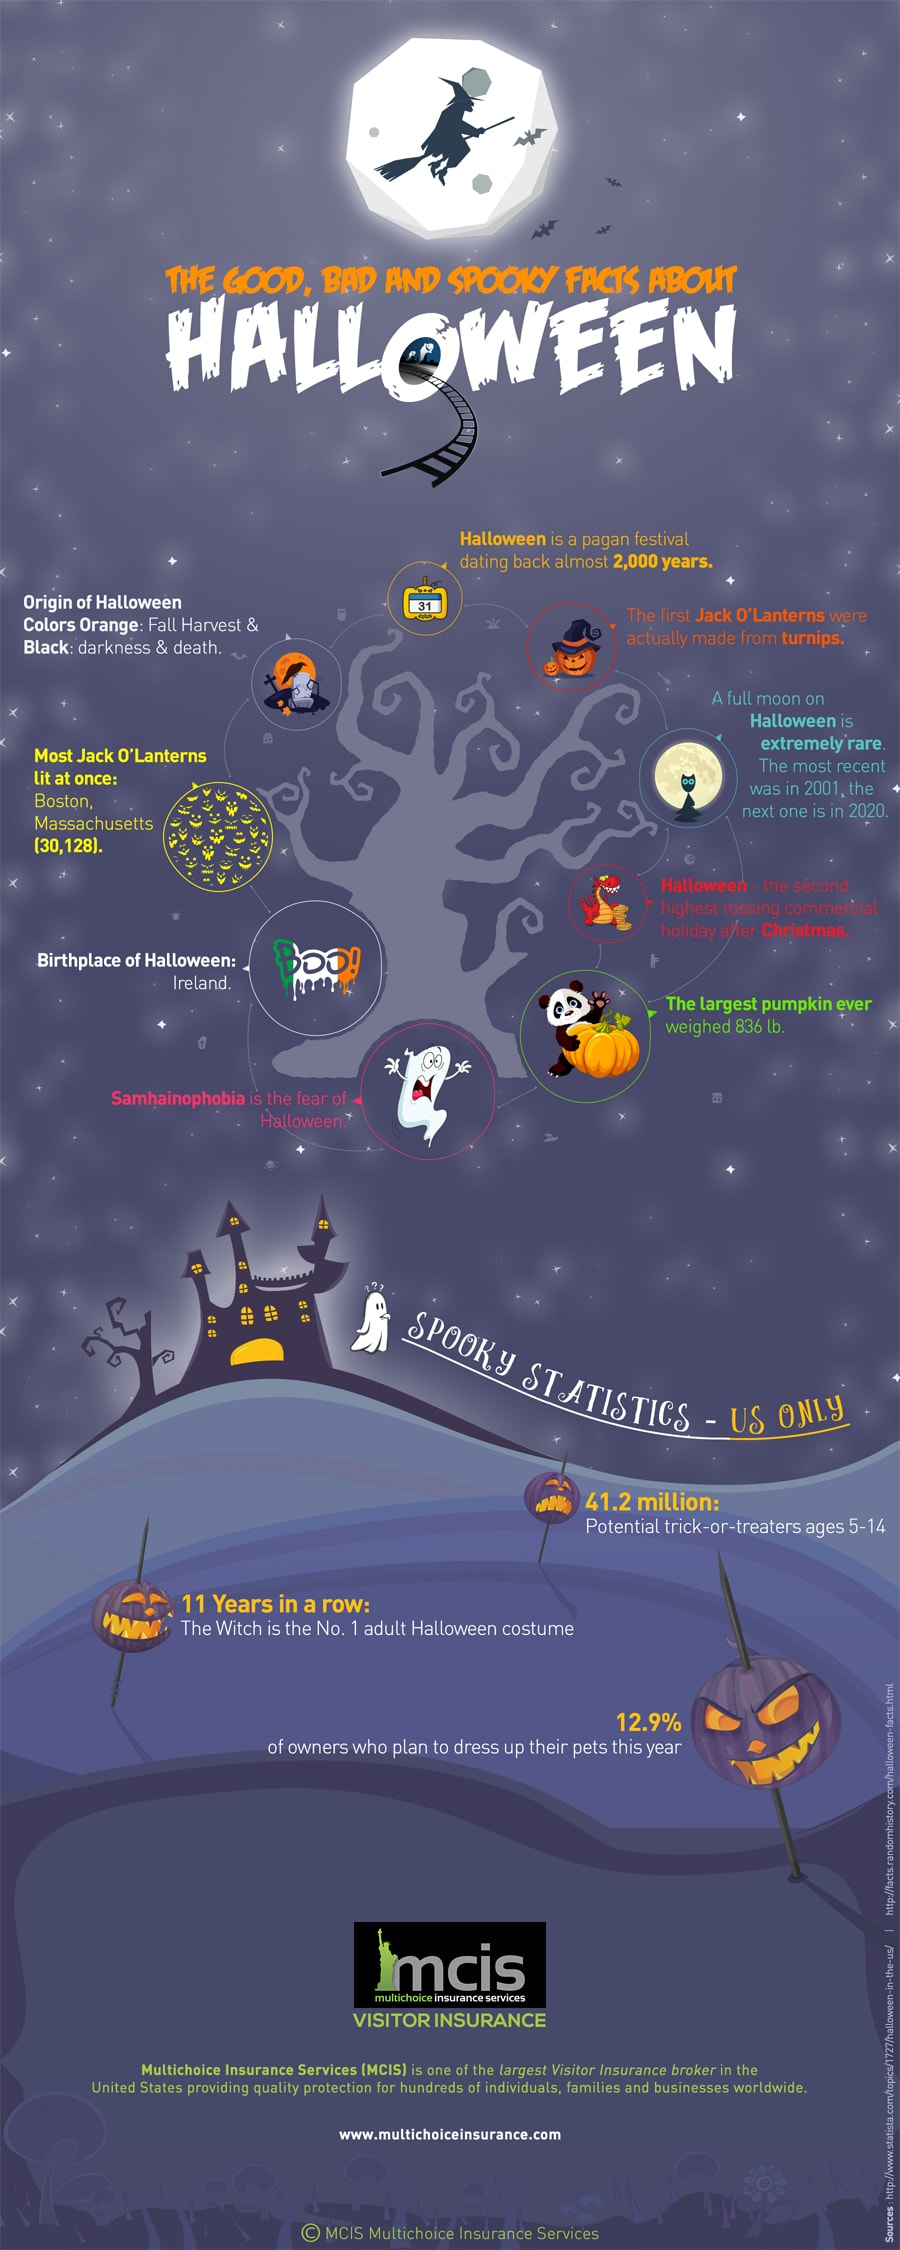 the_good_bad_and_spooky_facts_about_halloween-infographic-plaza